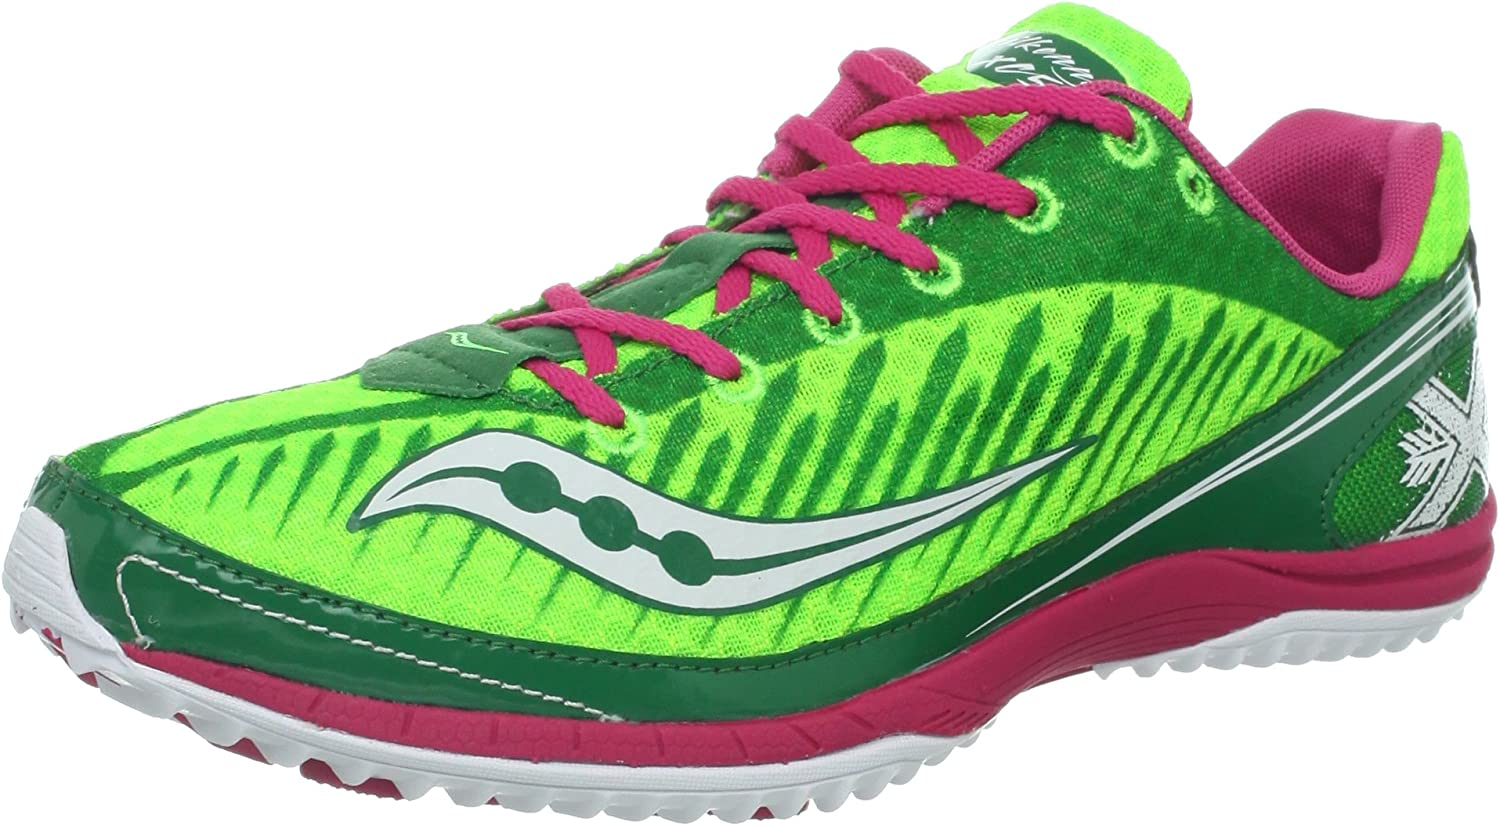 Saucony Women's Kilkenny XC5 Cross Country Spike shoes